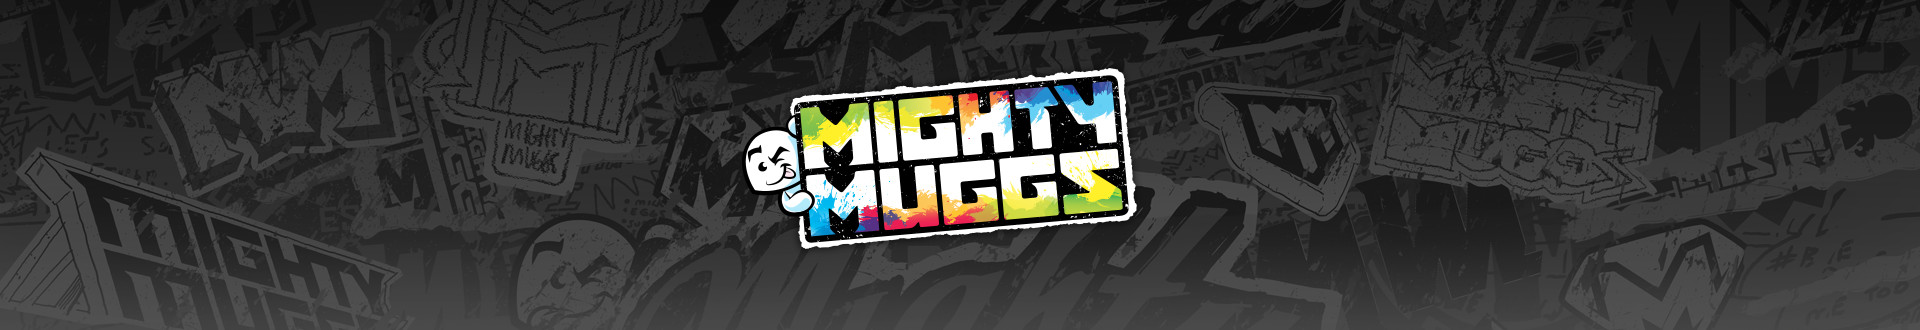 pgp_mightymuggs